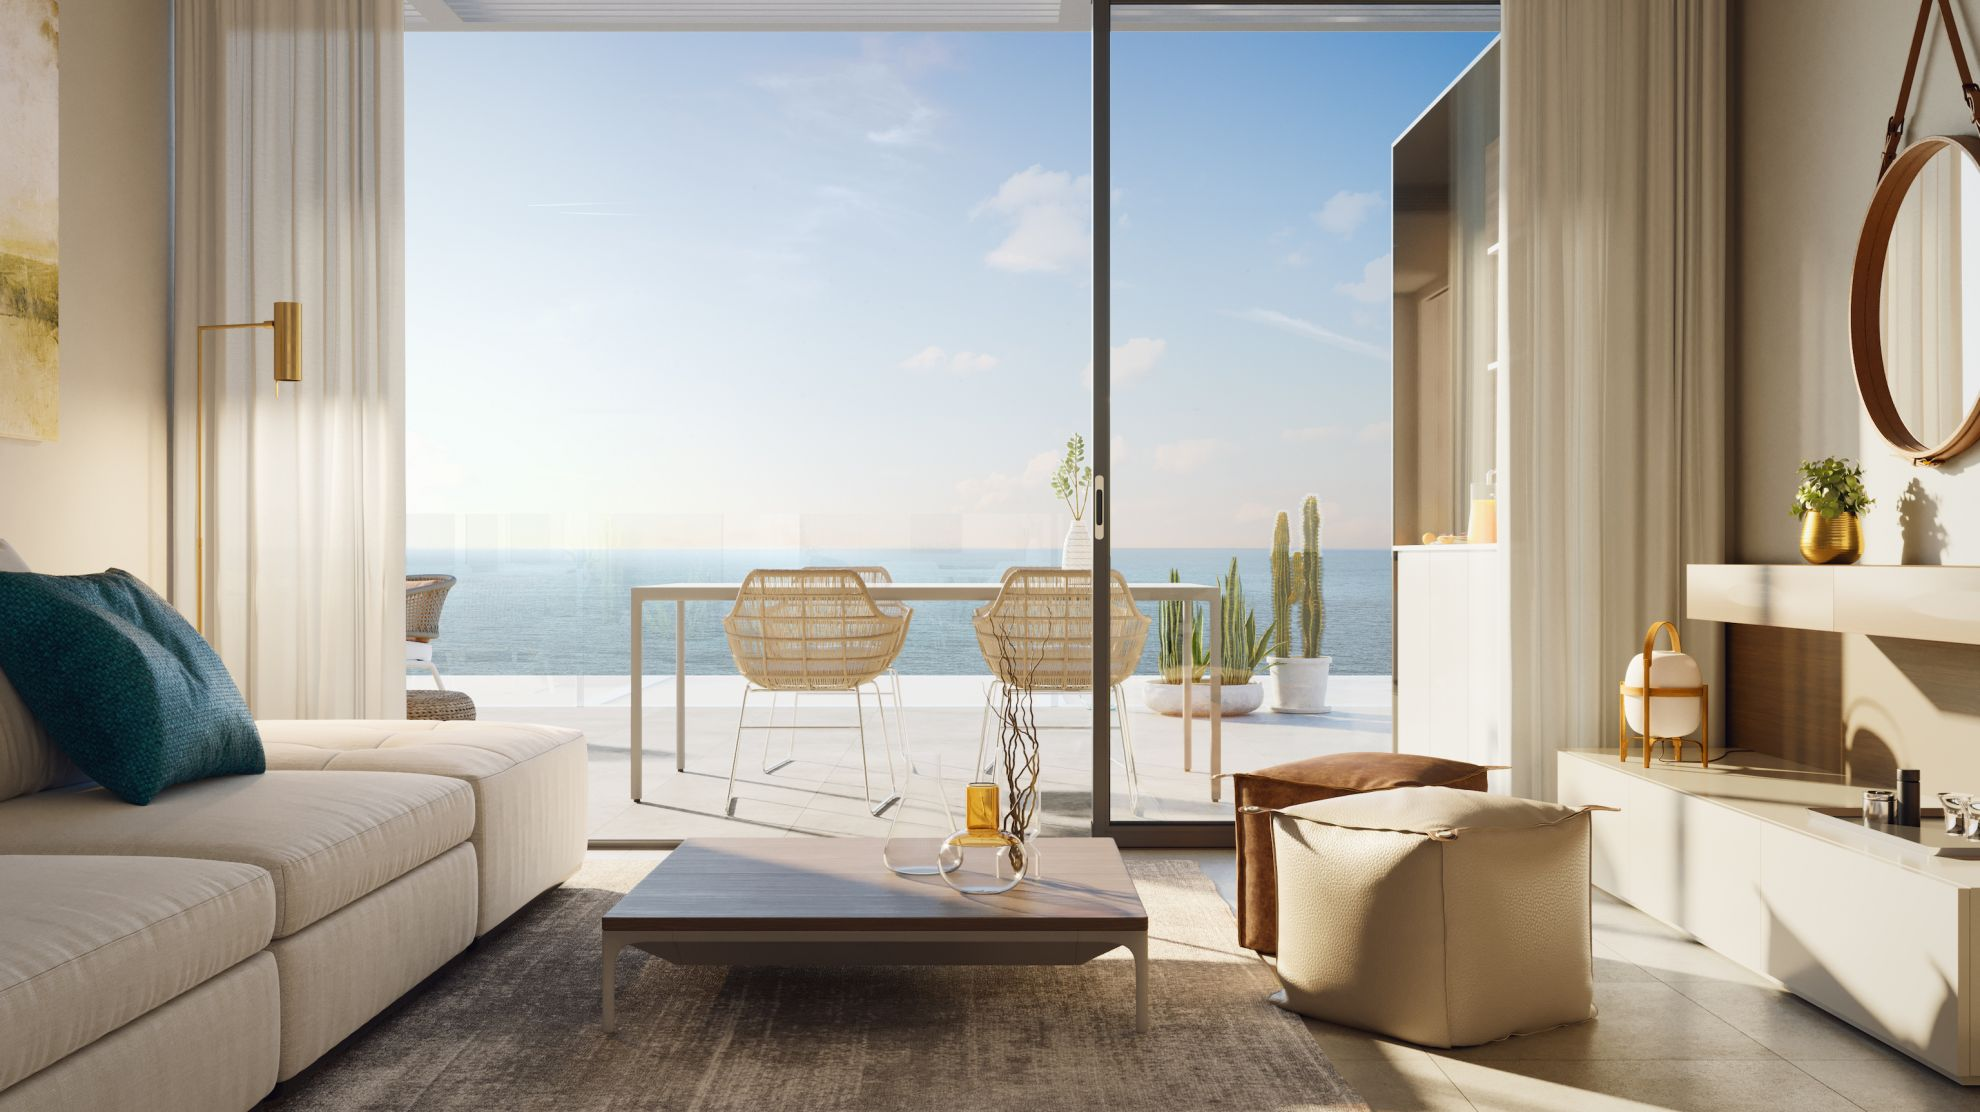 2 and 3 bedroom penthouse-style apartments with big terraces overlookg the sea. House 23 30